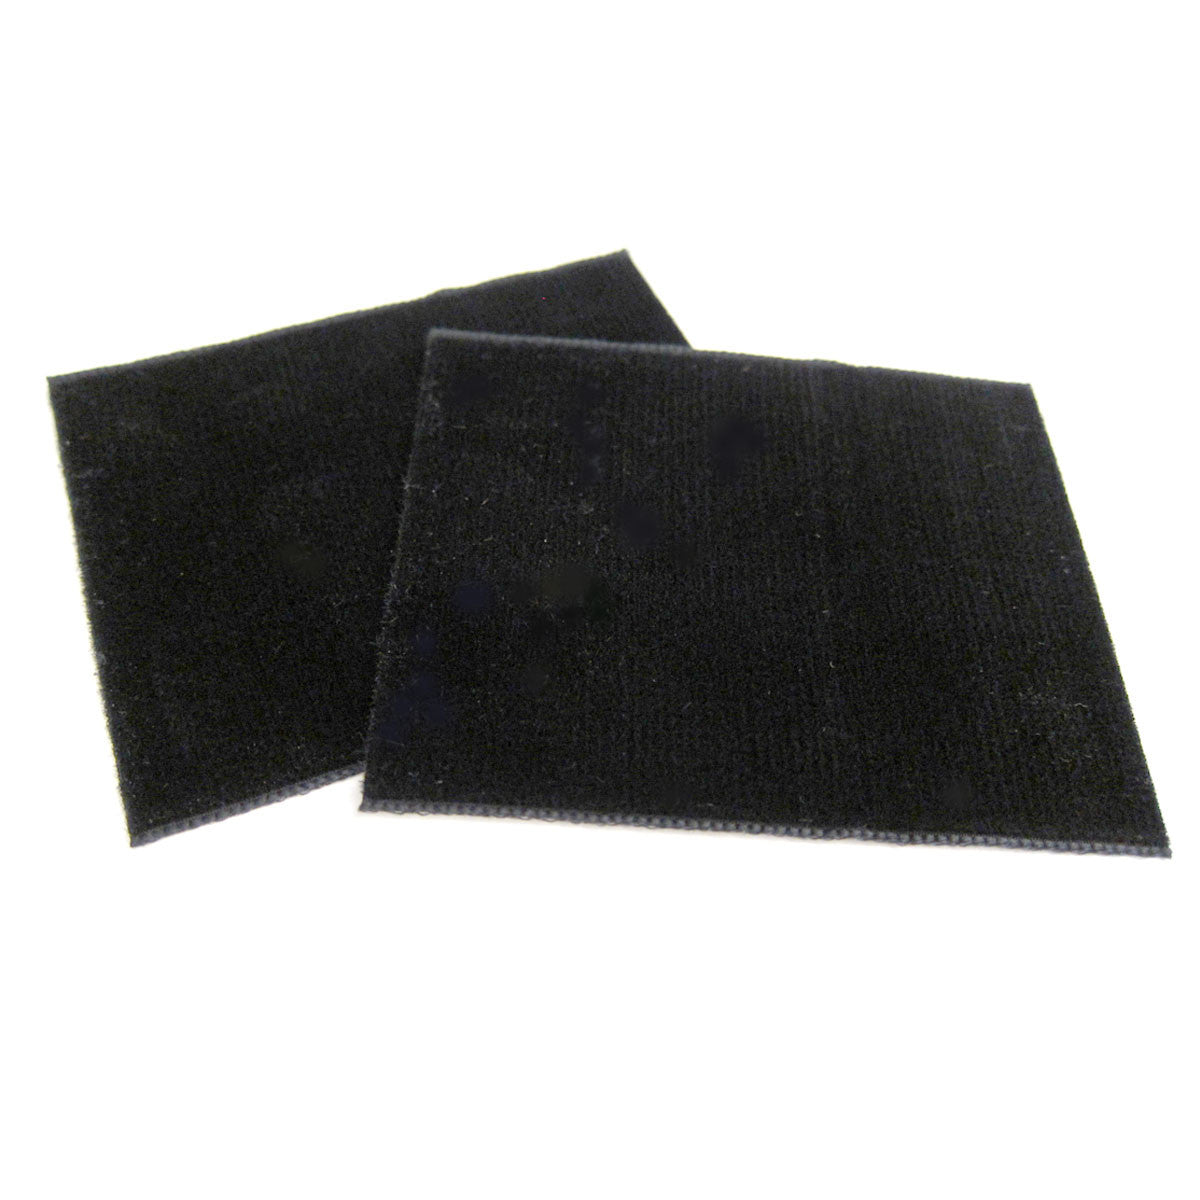 Mobile Fidelity: Replacement Record Brush Pads - 2 Units detail